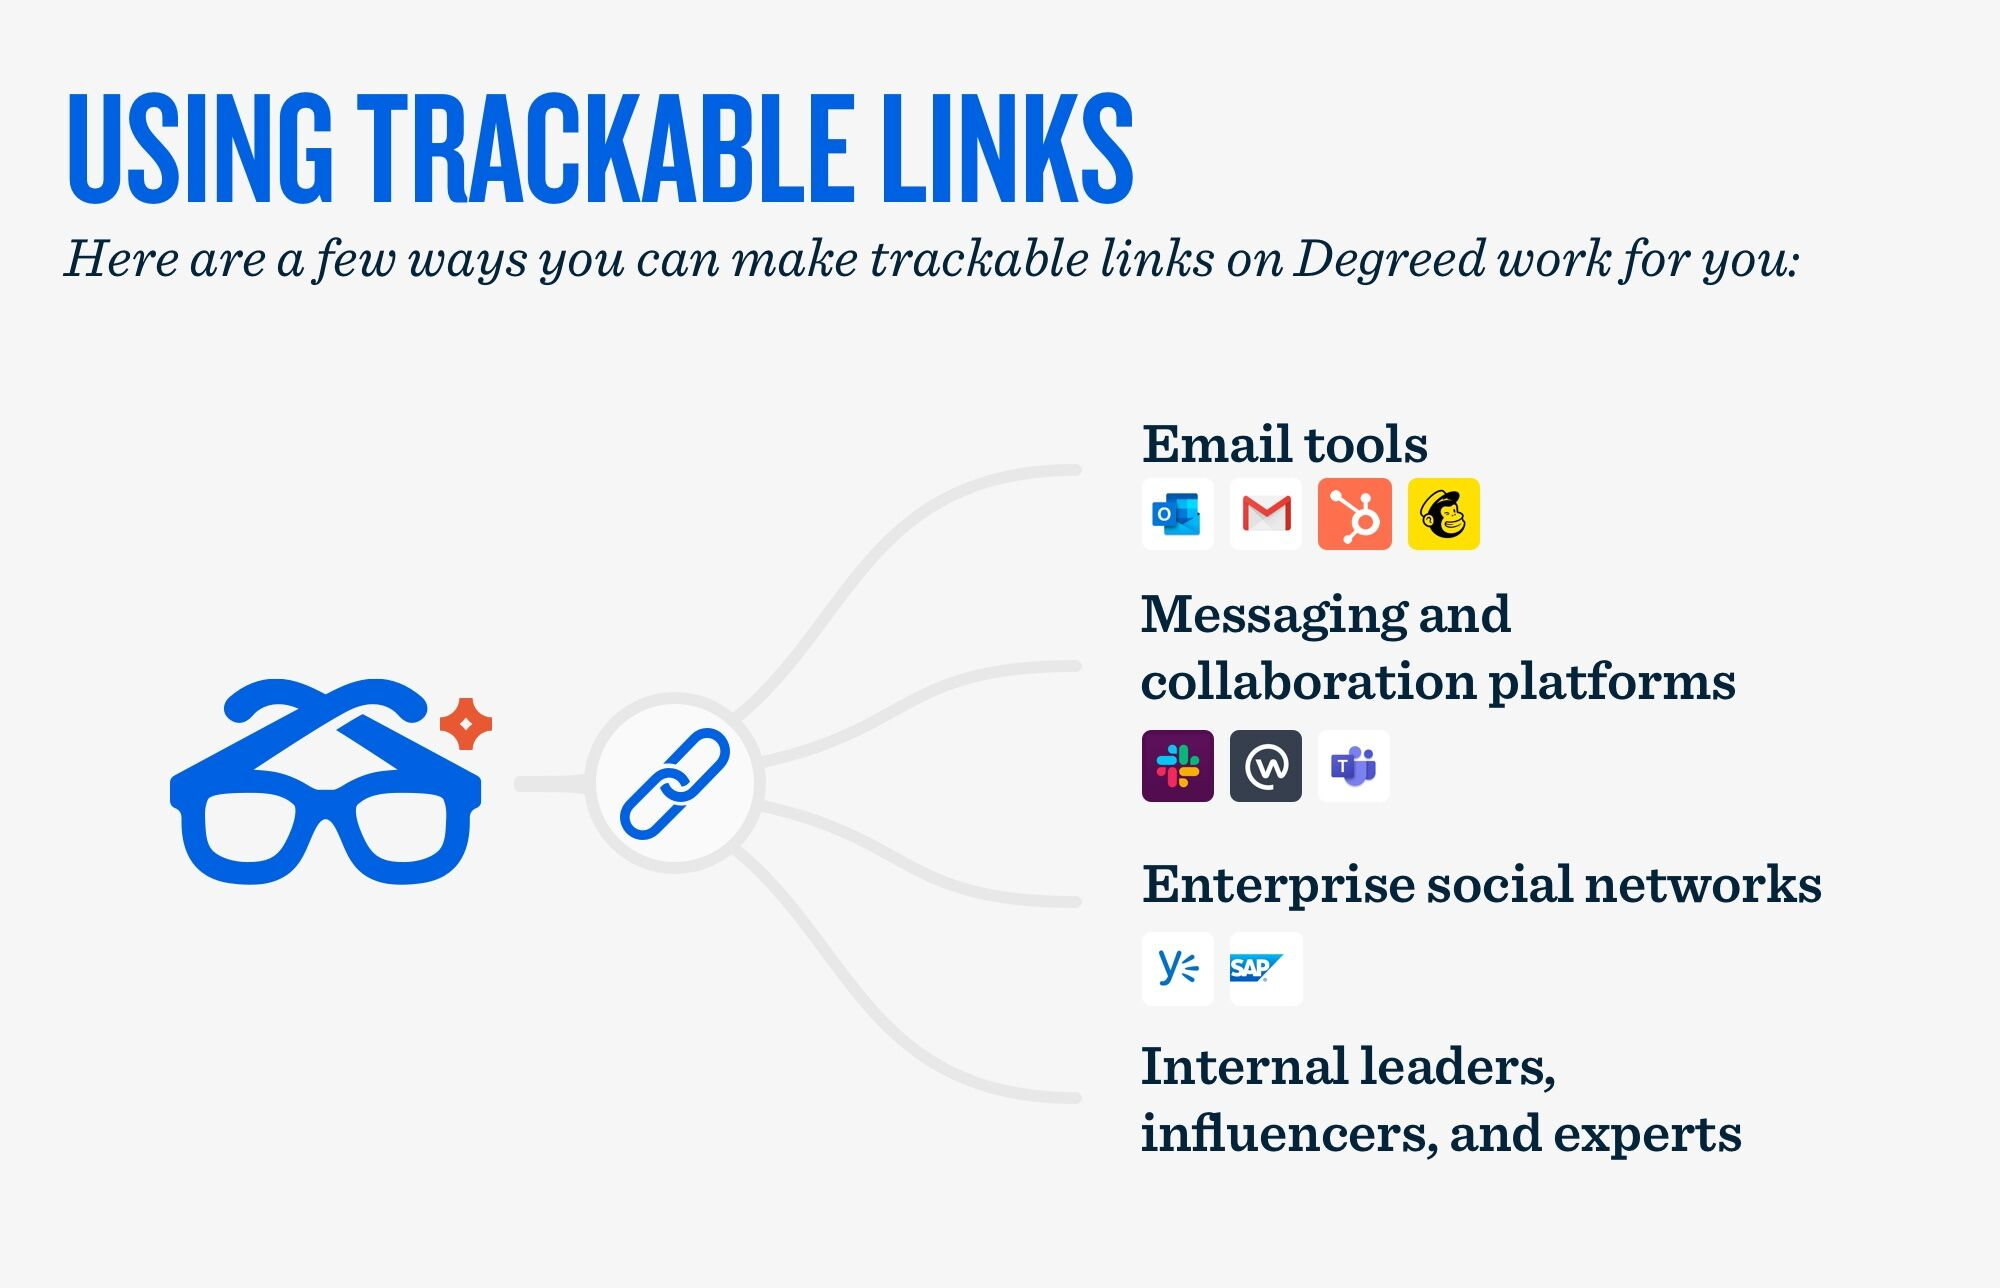 How to use Trackable Links